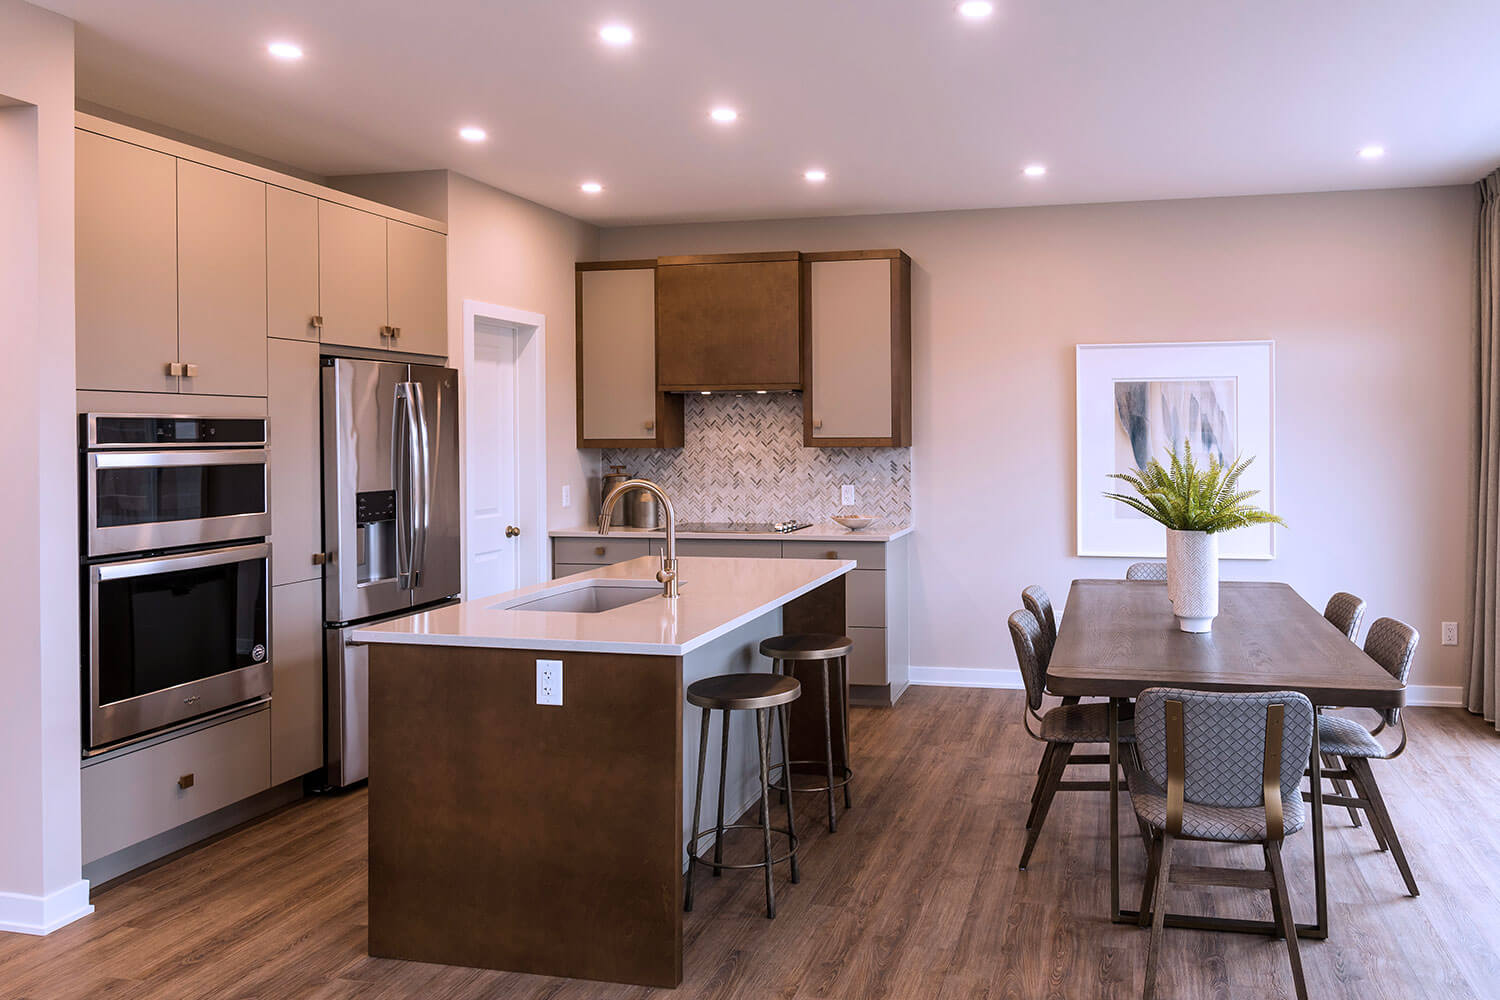 New Ottawa Single Family Home Quick Possession Custom Auden in Millers Crossing in Carleton Place, located at 30 Stanzel Drive, Carleton Place Built By Cardel Homes Ottawa